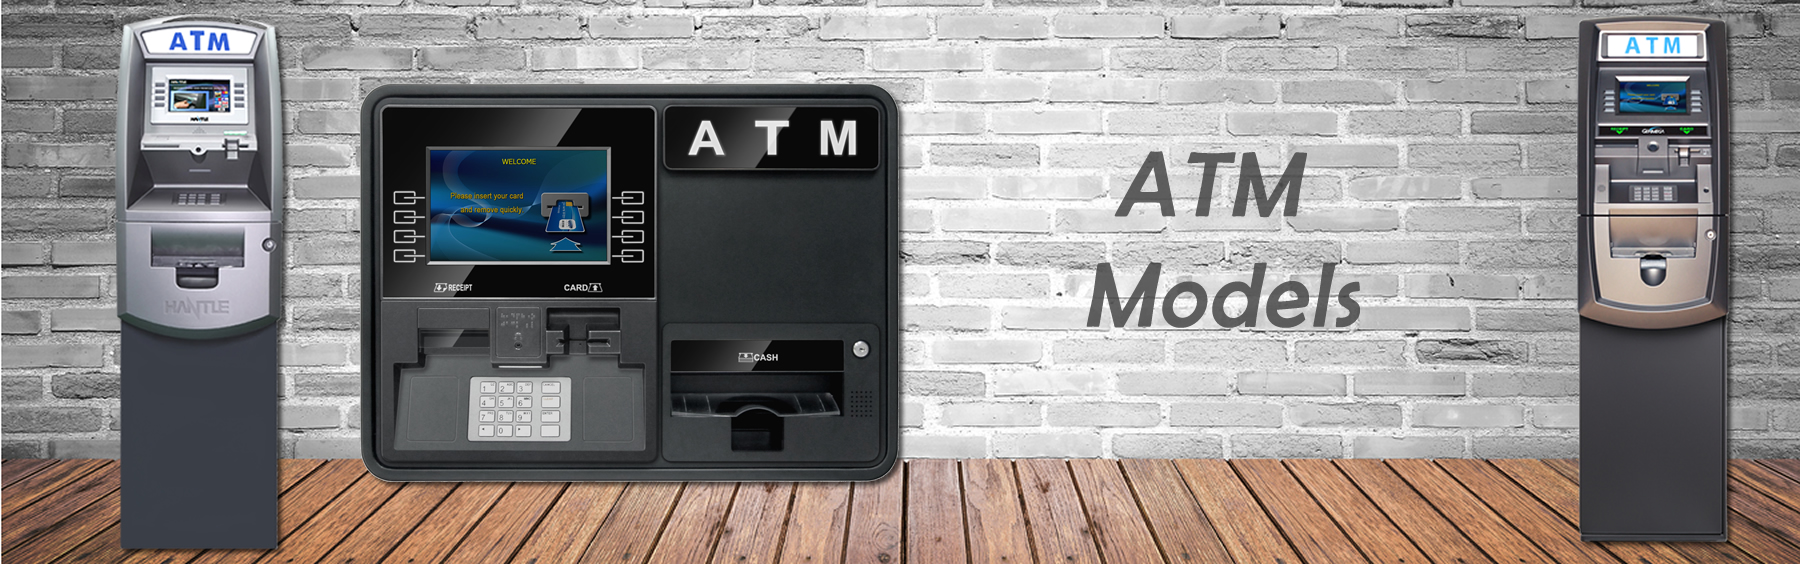 Tranax ATMs available from Funds Access Inc.